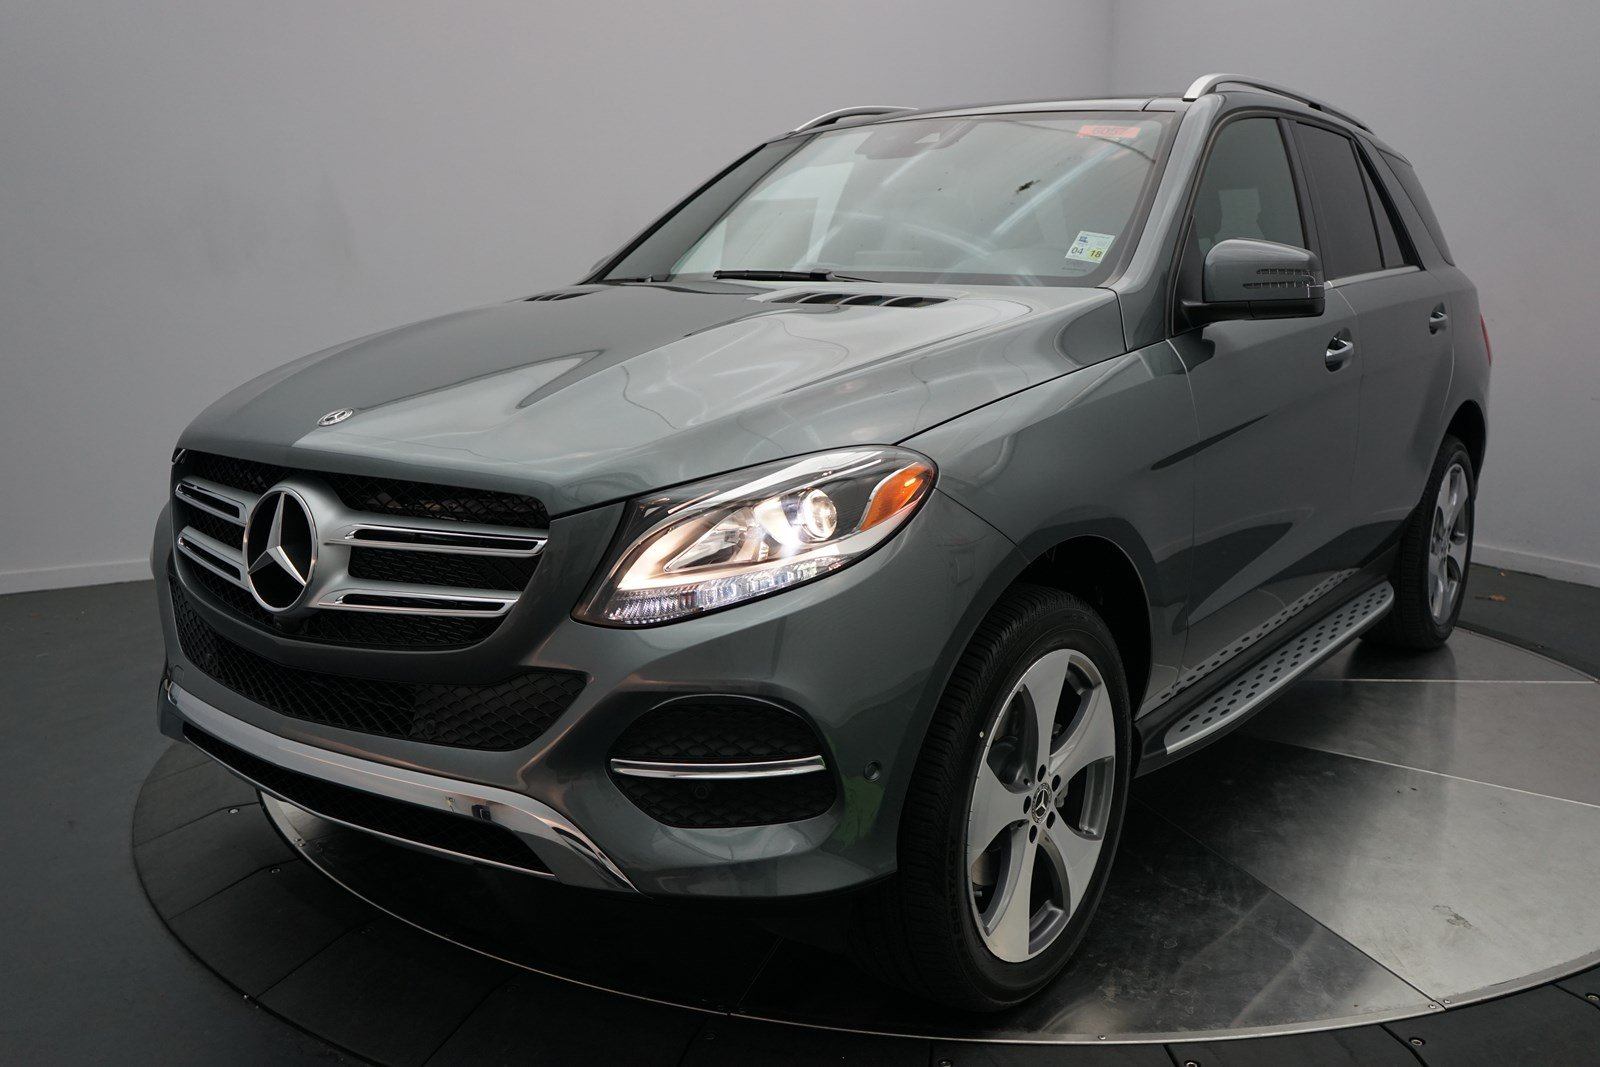 New 2017 mercedes benz gle gle 350 suv in shreveport 6057 for Mercedes benz clk 350 suv